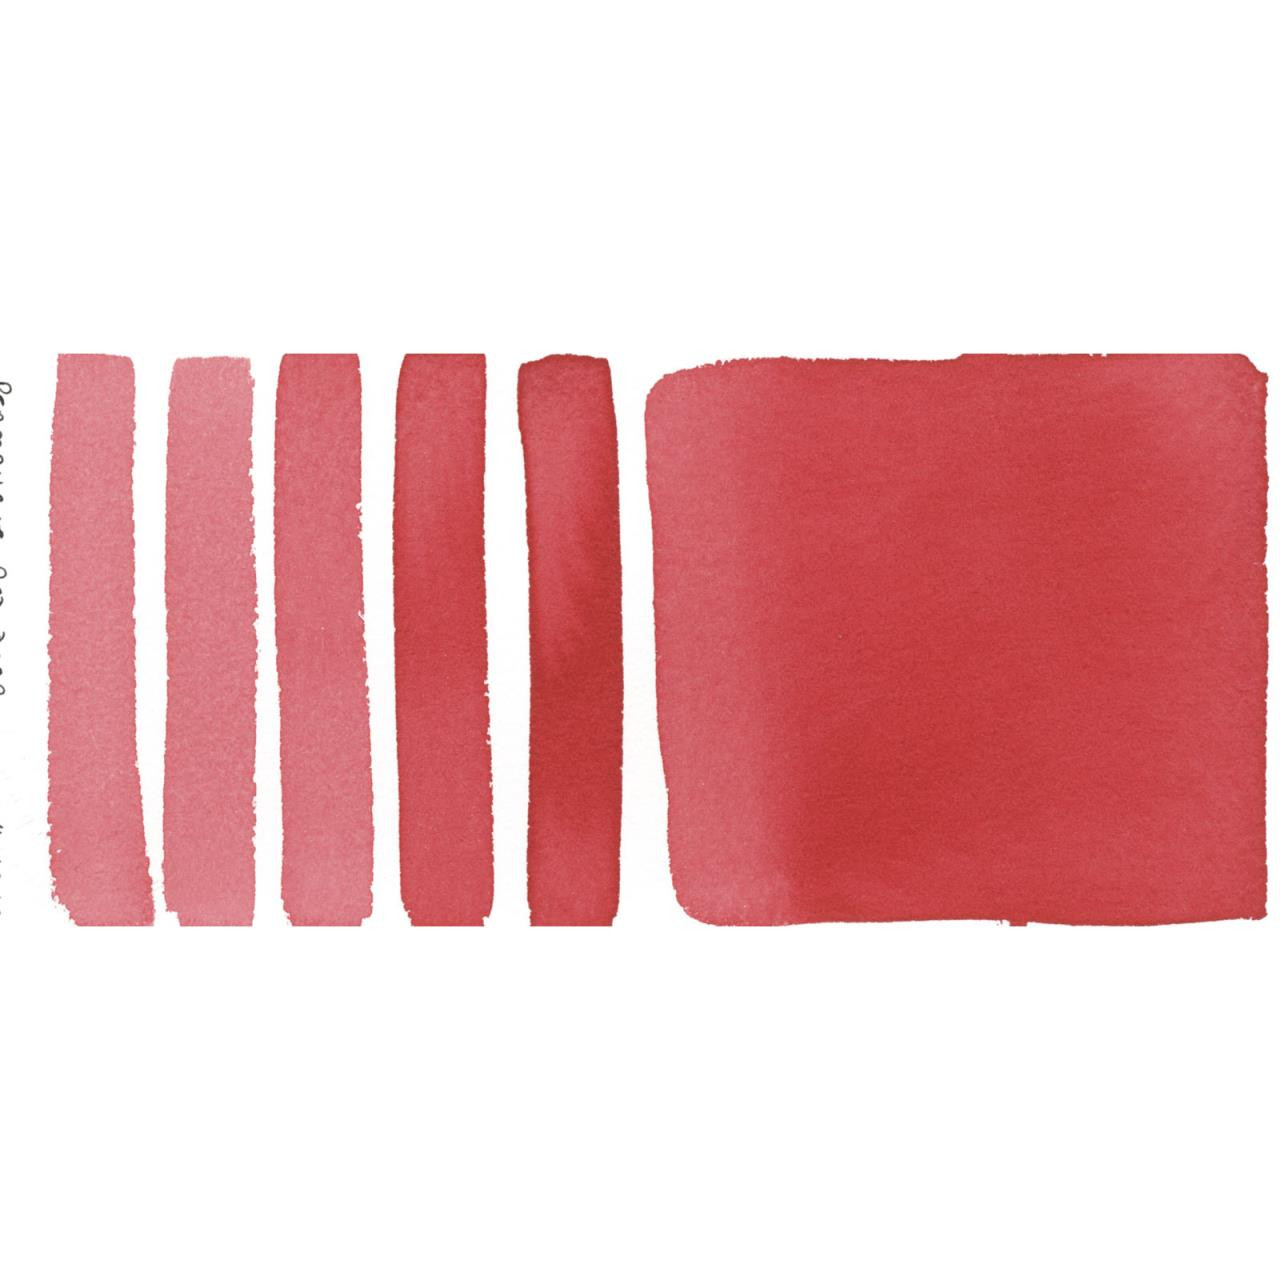 Permanent Red Deep, DANIEL SMITH Extra Fine Watercolors 15ml Tubes -